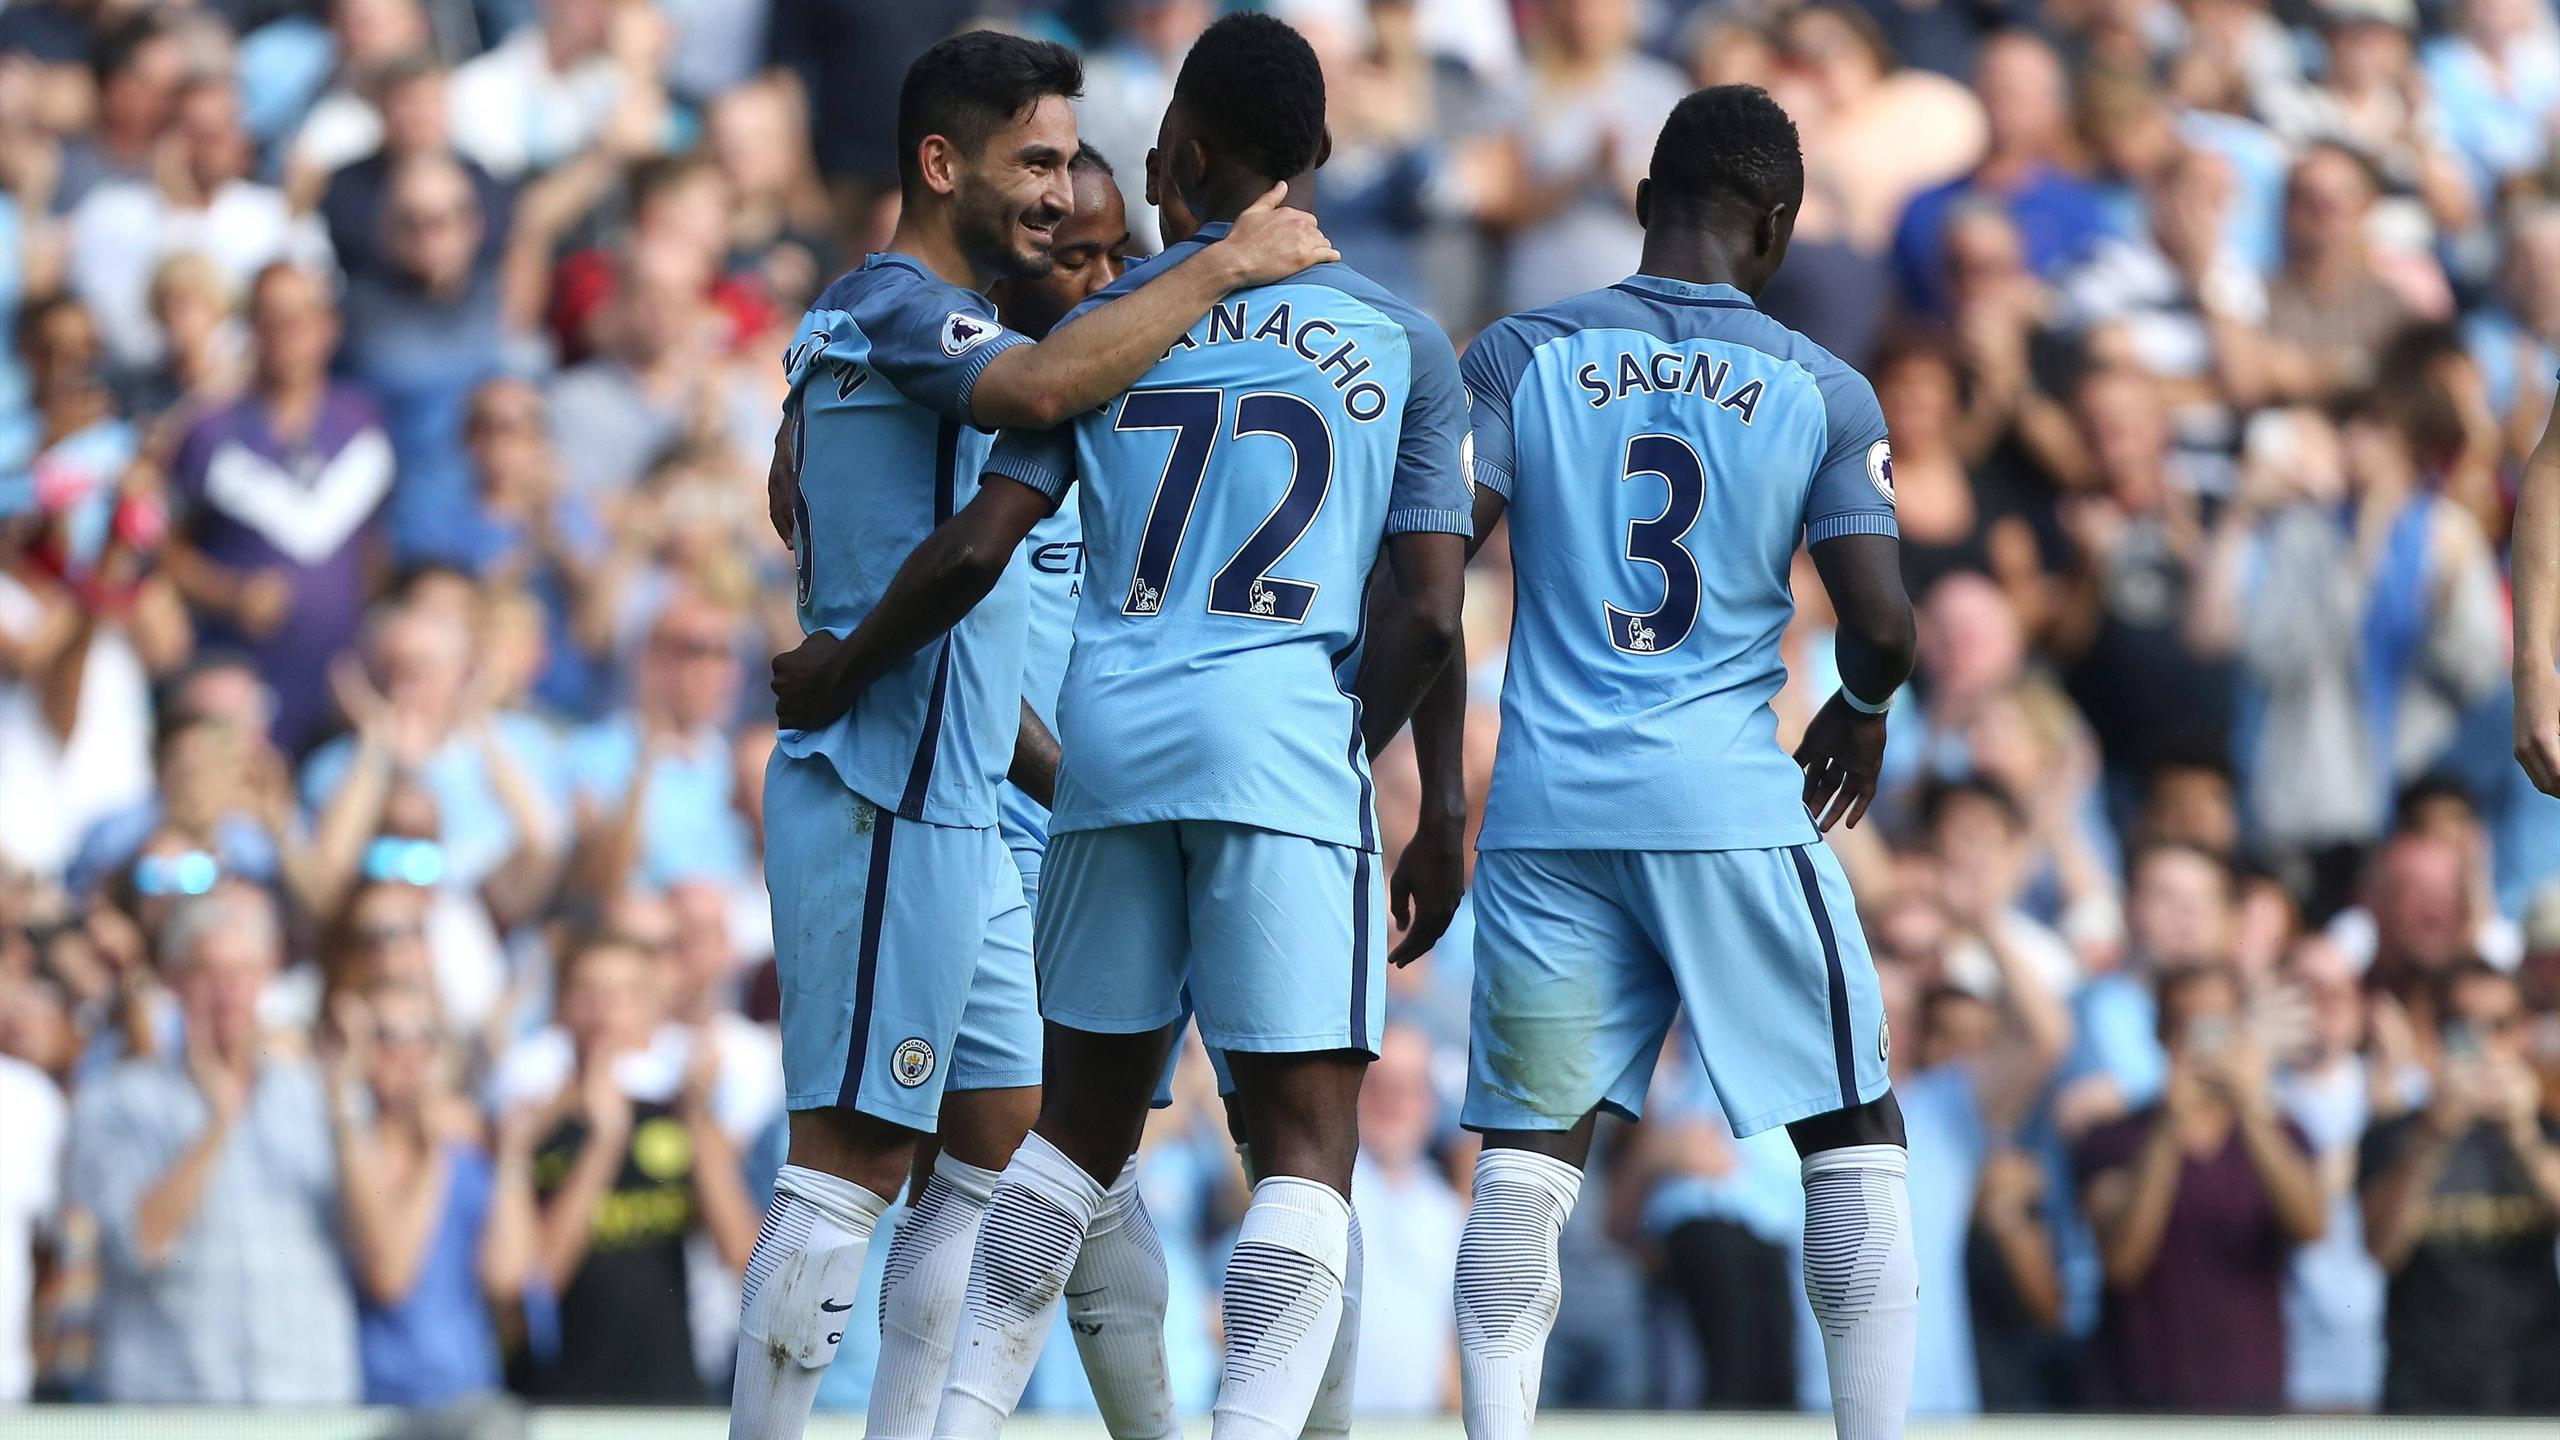 Ilkay Gündogan celebrates his first goal for Manchester City